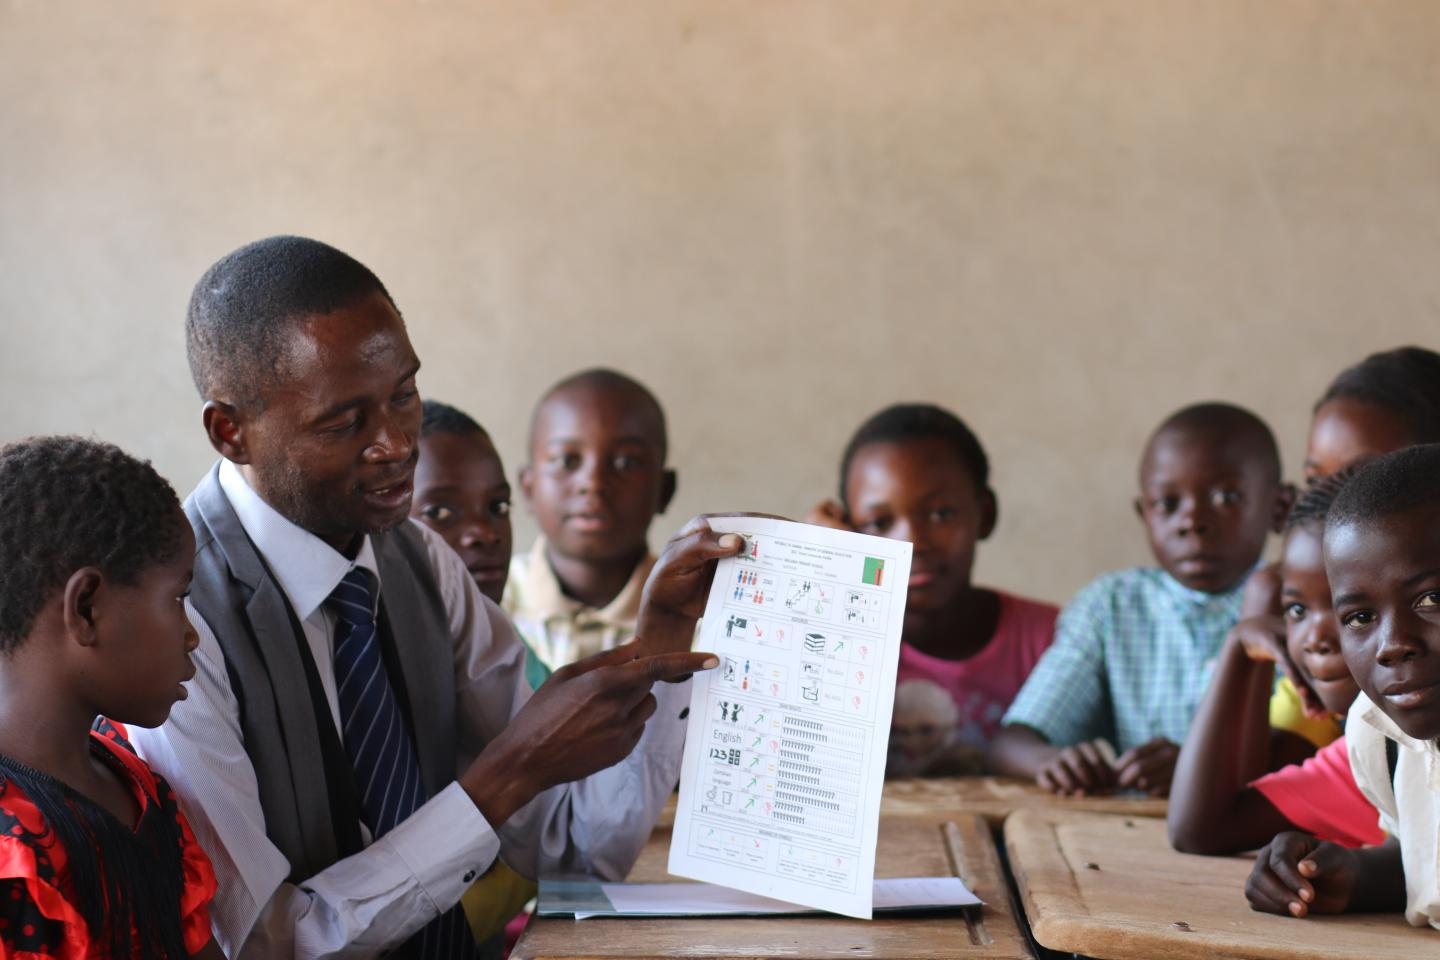 ata for better quality education: a volunteer shows school profile cards to students in a classroom.